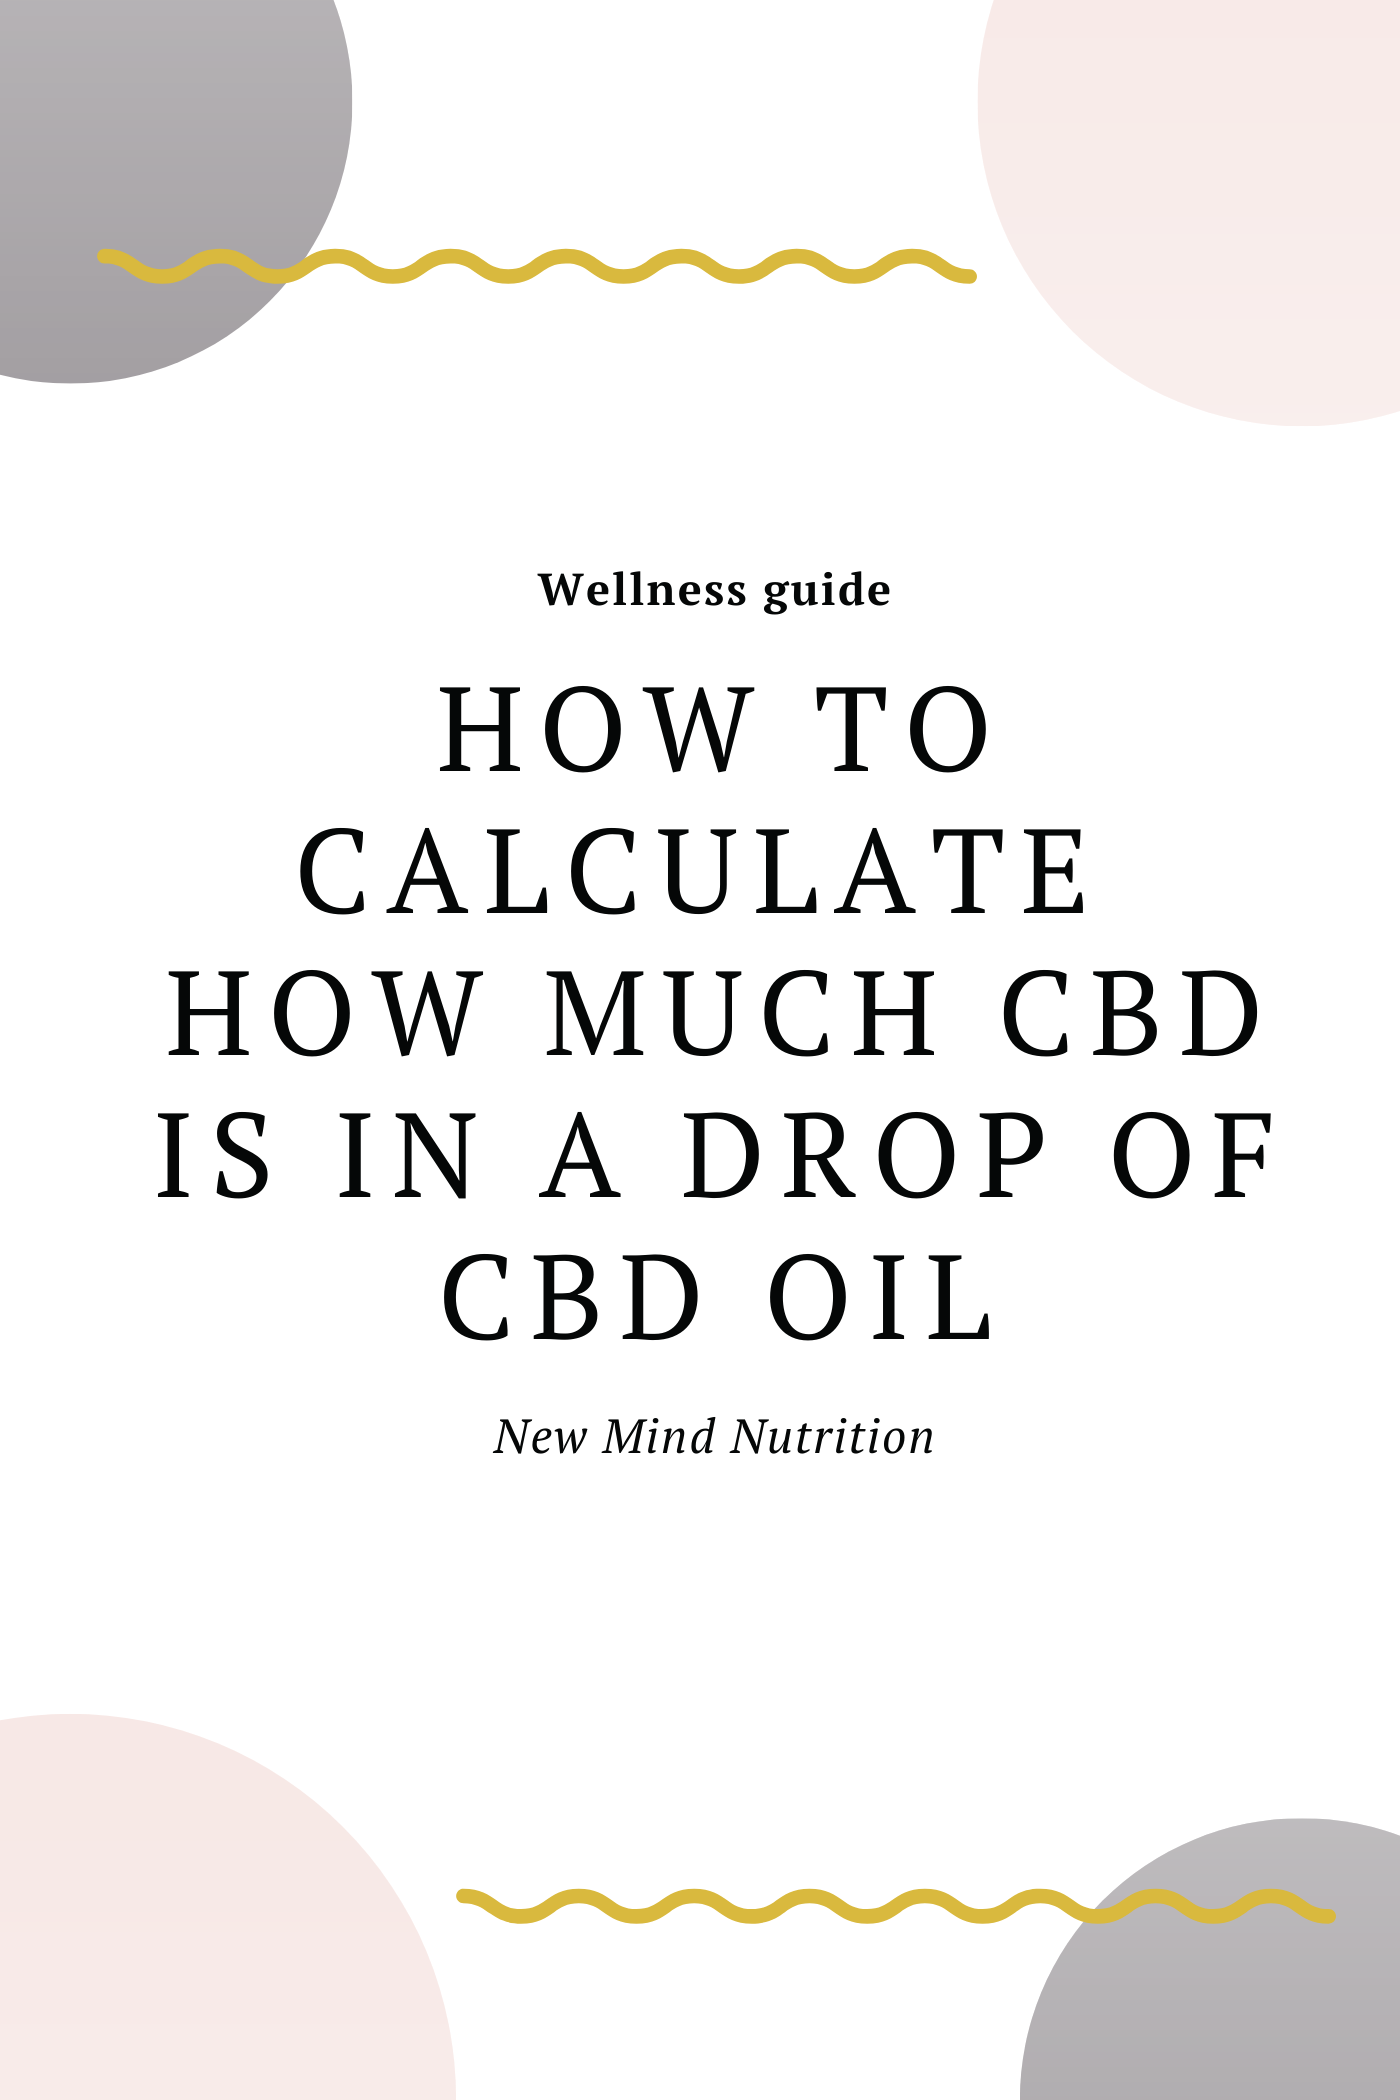 How Much CBD is in a drop of CBD Oil?